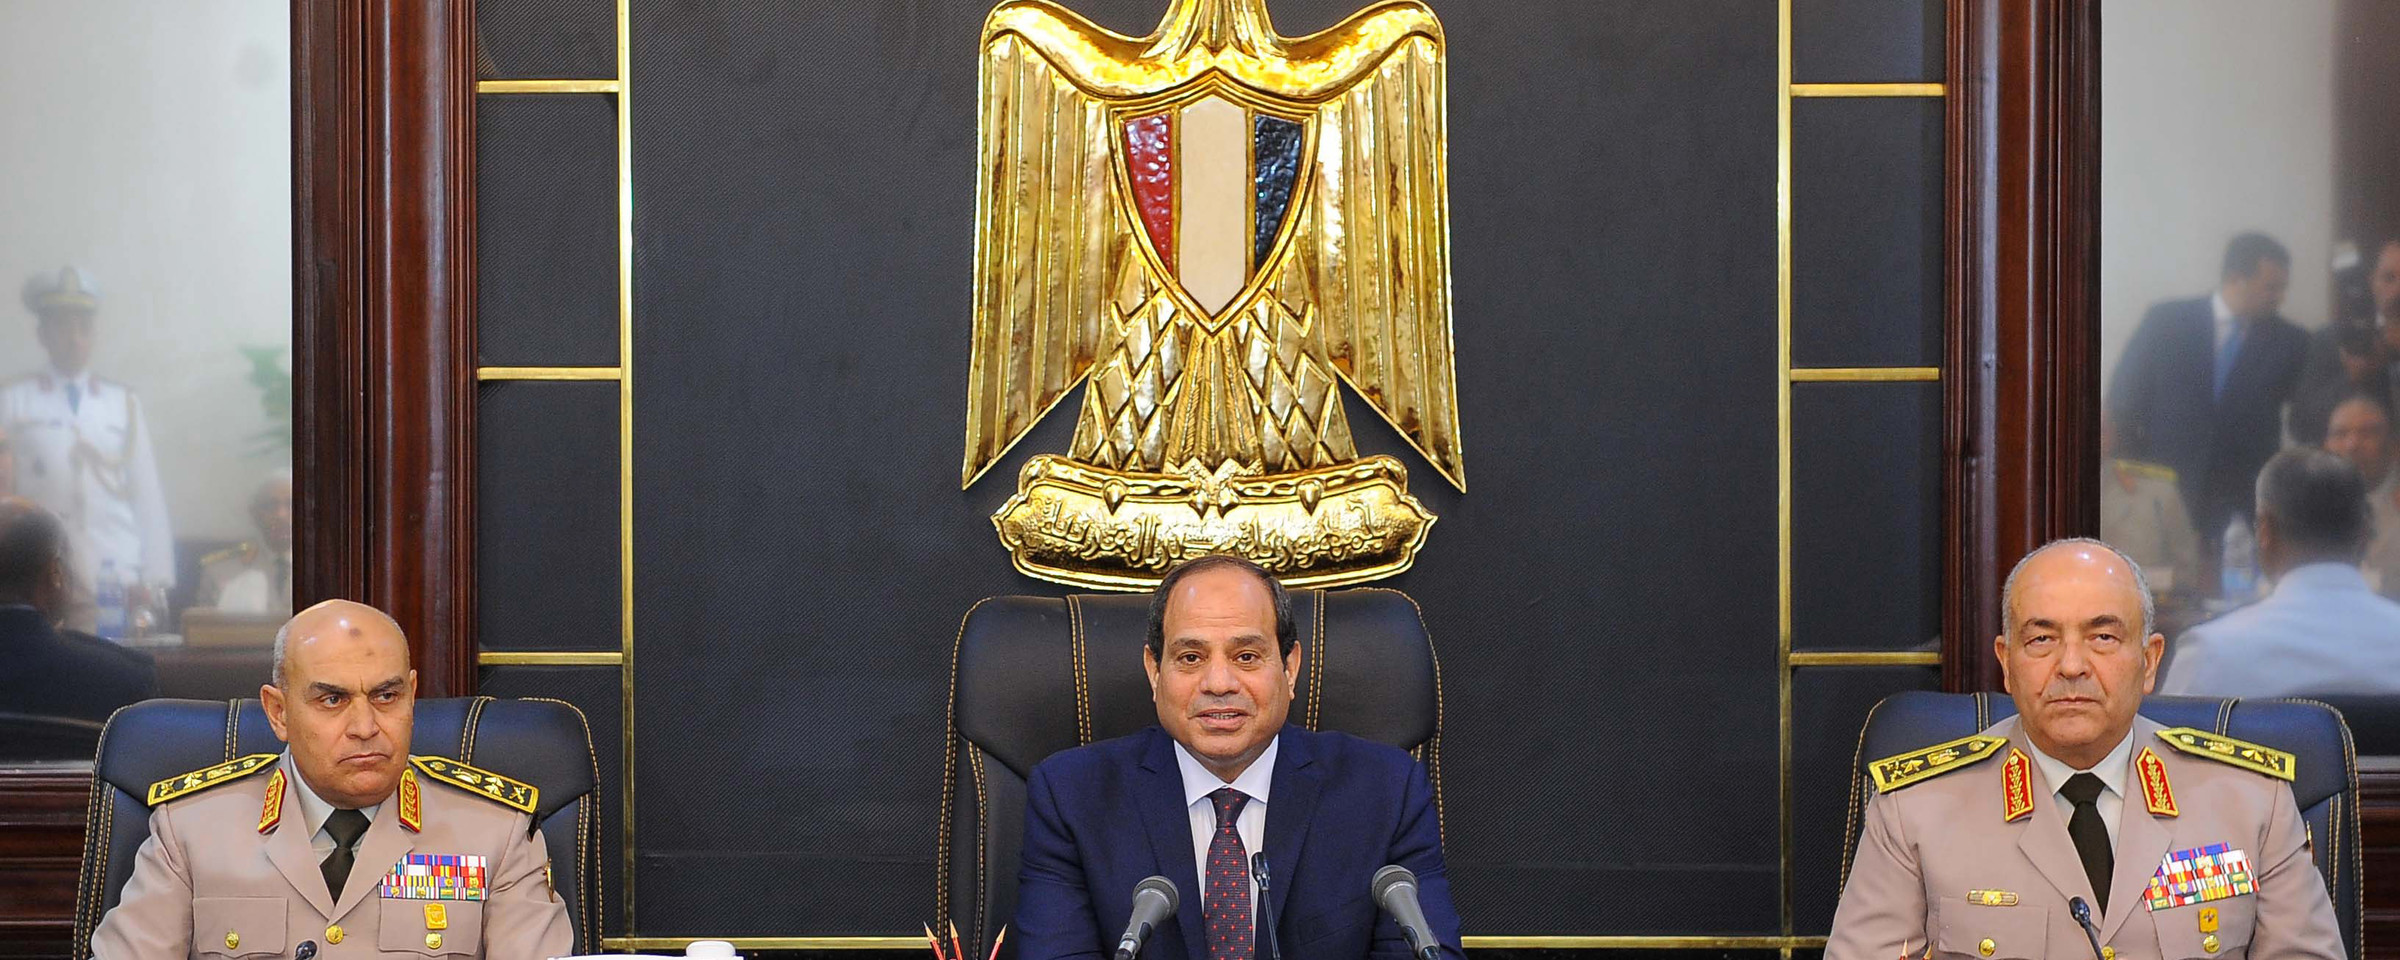 Abdulfattah al-Sisi sits at a desk underneath golden eagle medallion with a military officer on either side of him